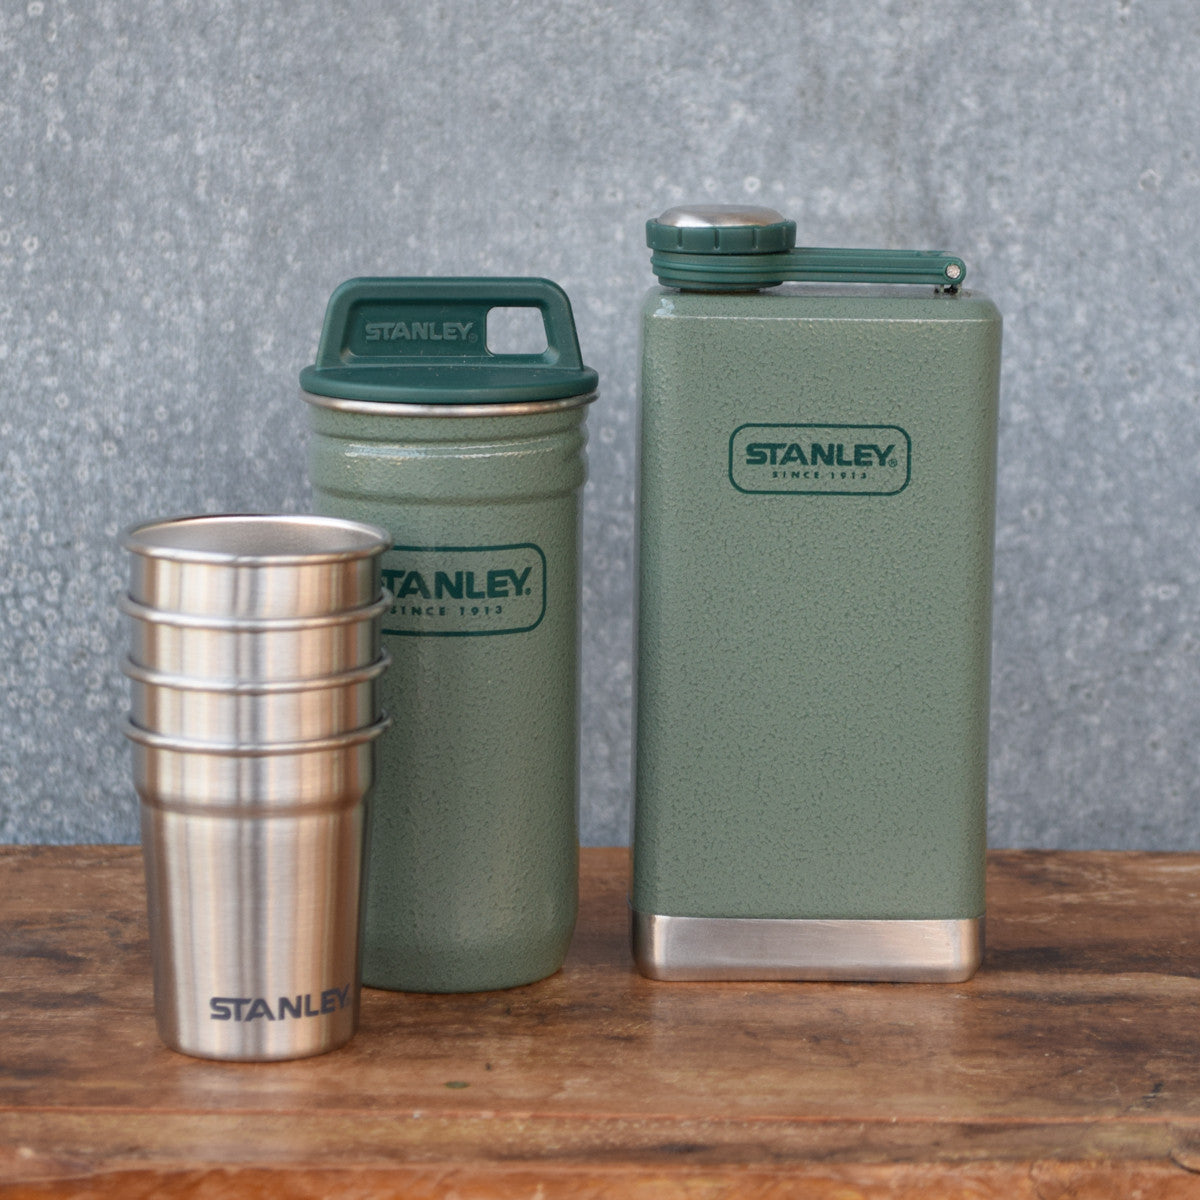 Stanley vacuum flasks Australia - Odgers and McClelland Exchange Stores